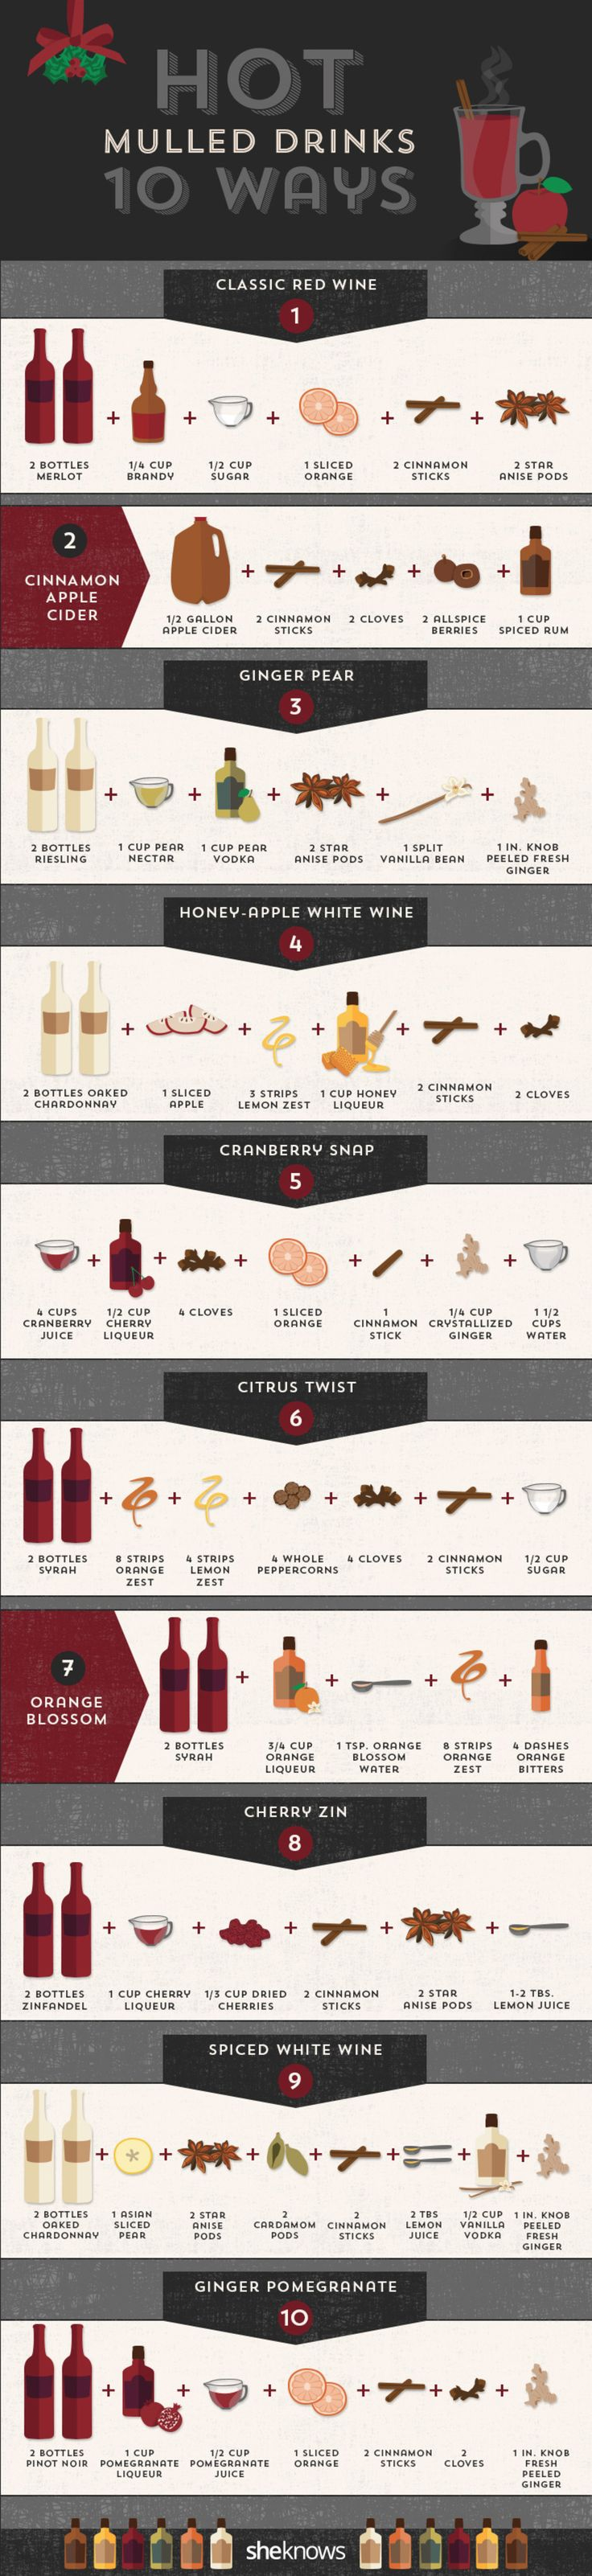 If you live in an area where it's super chilly already, try mulling some wine with spices and citrus.